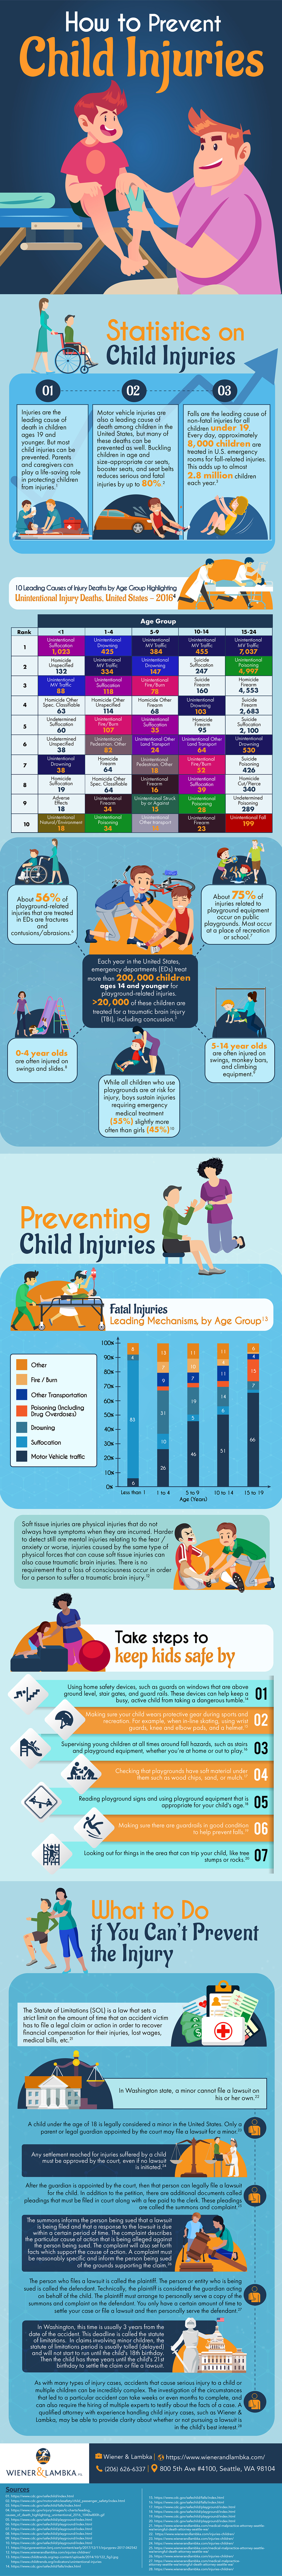 how to prevent child injuries